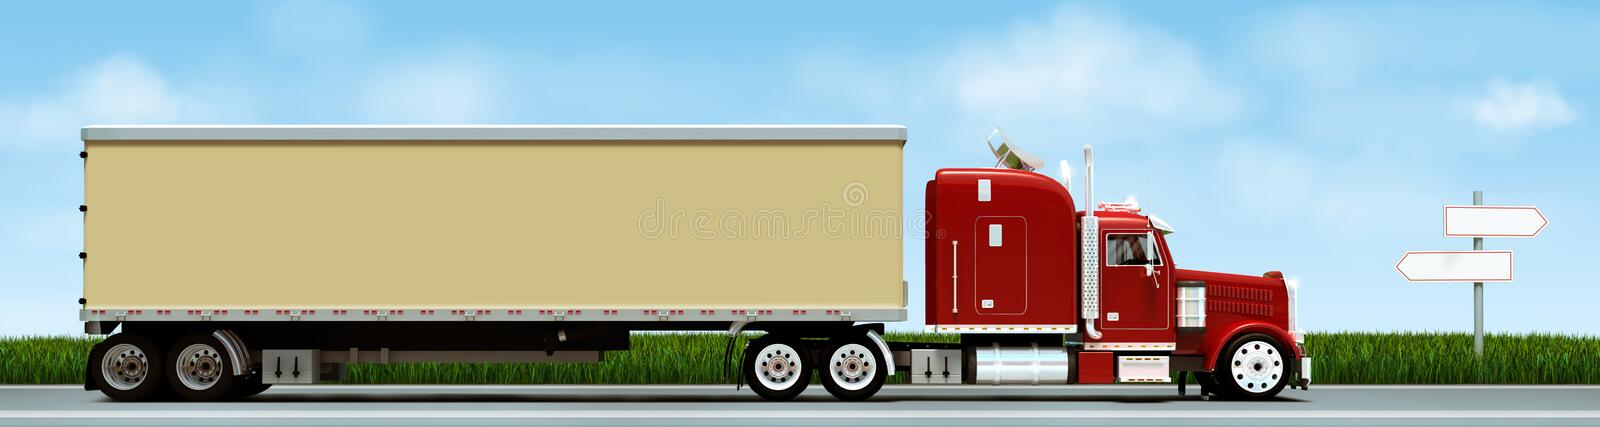 Download Truck stock image. Image of street, container, mini, transportation - 7466465